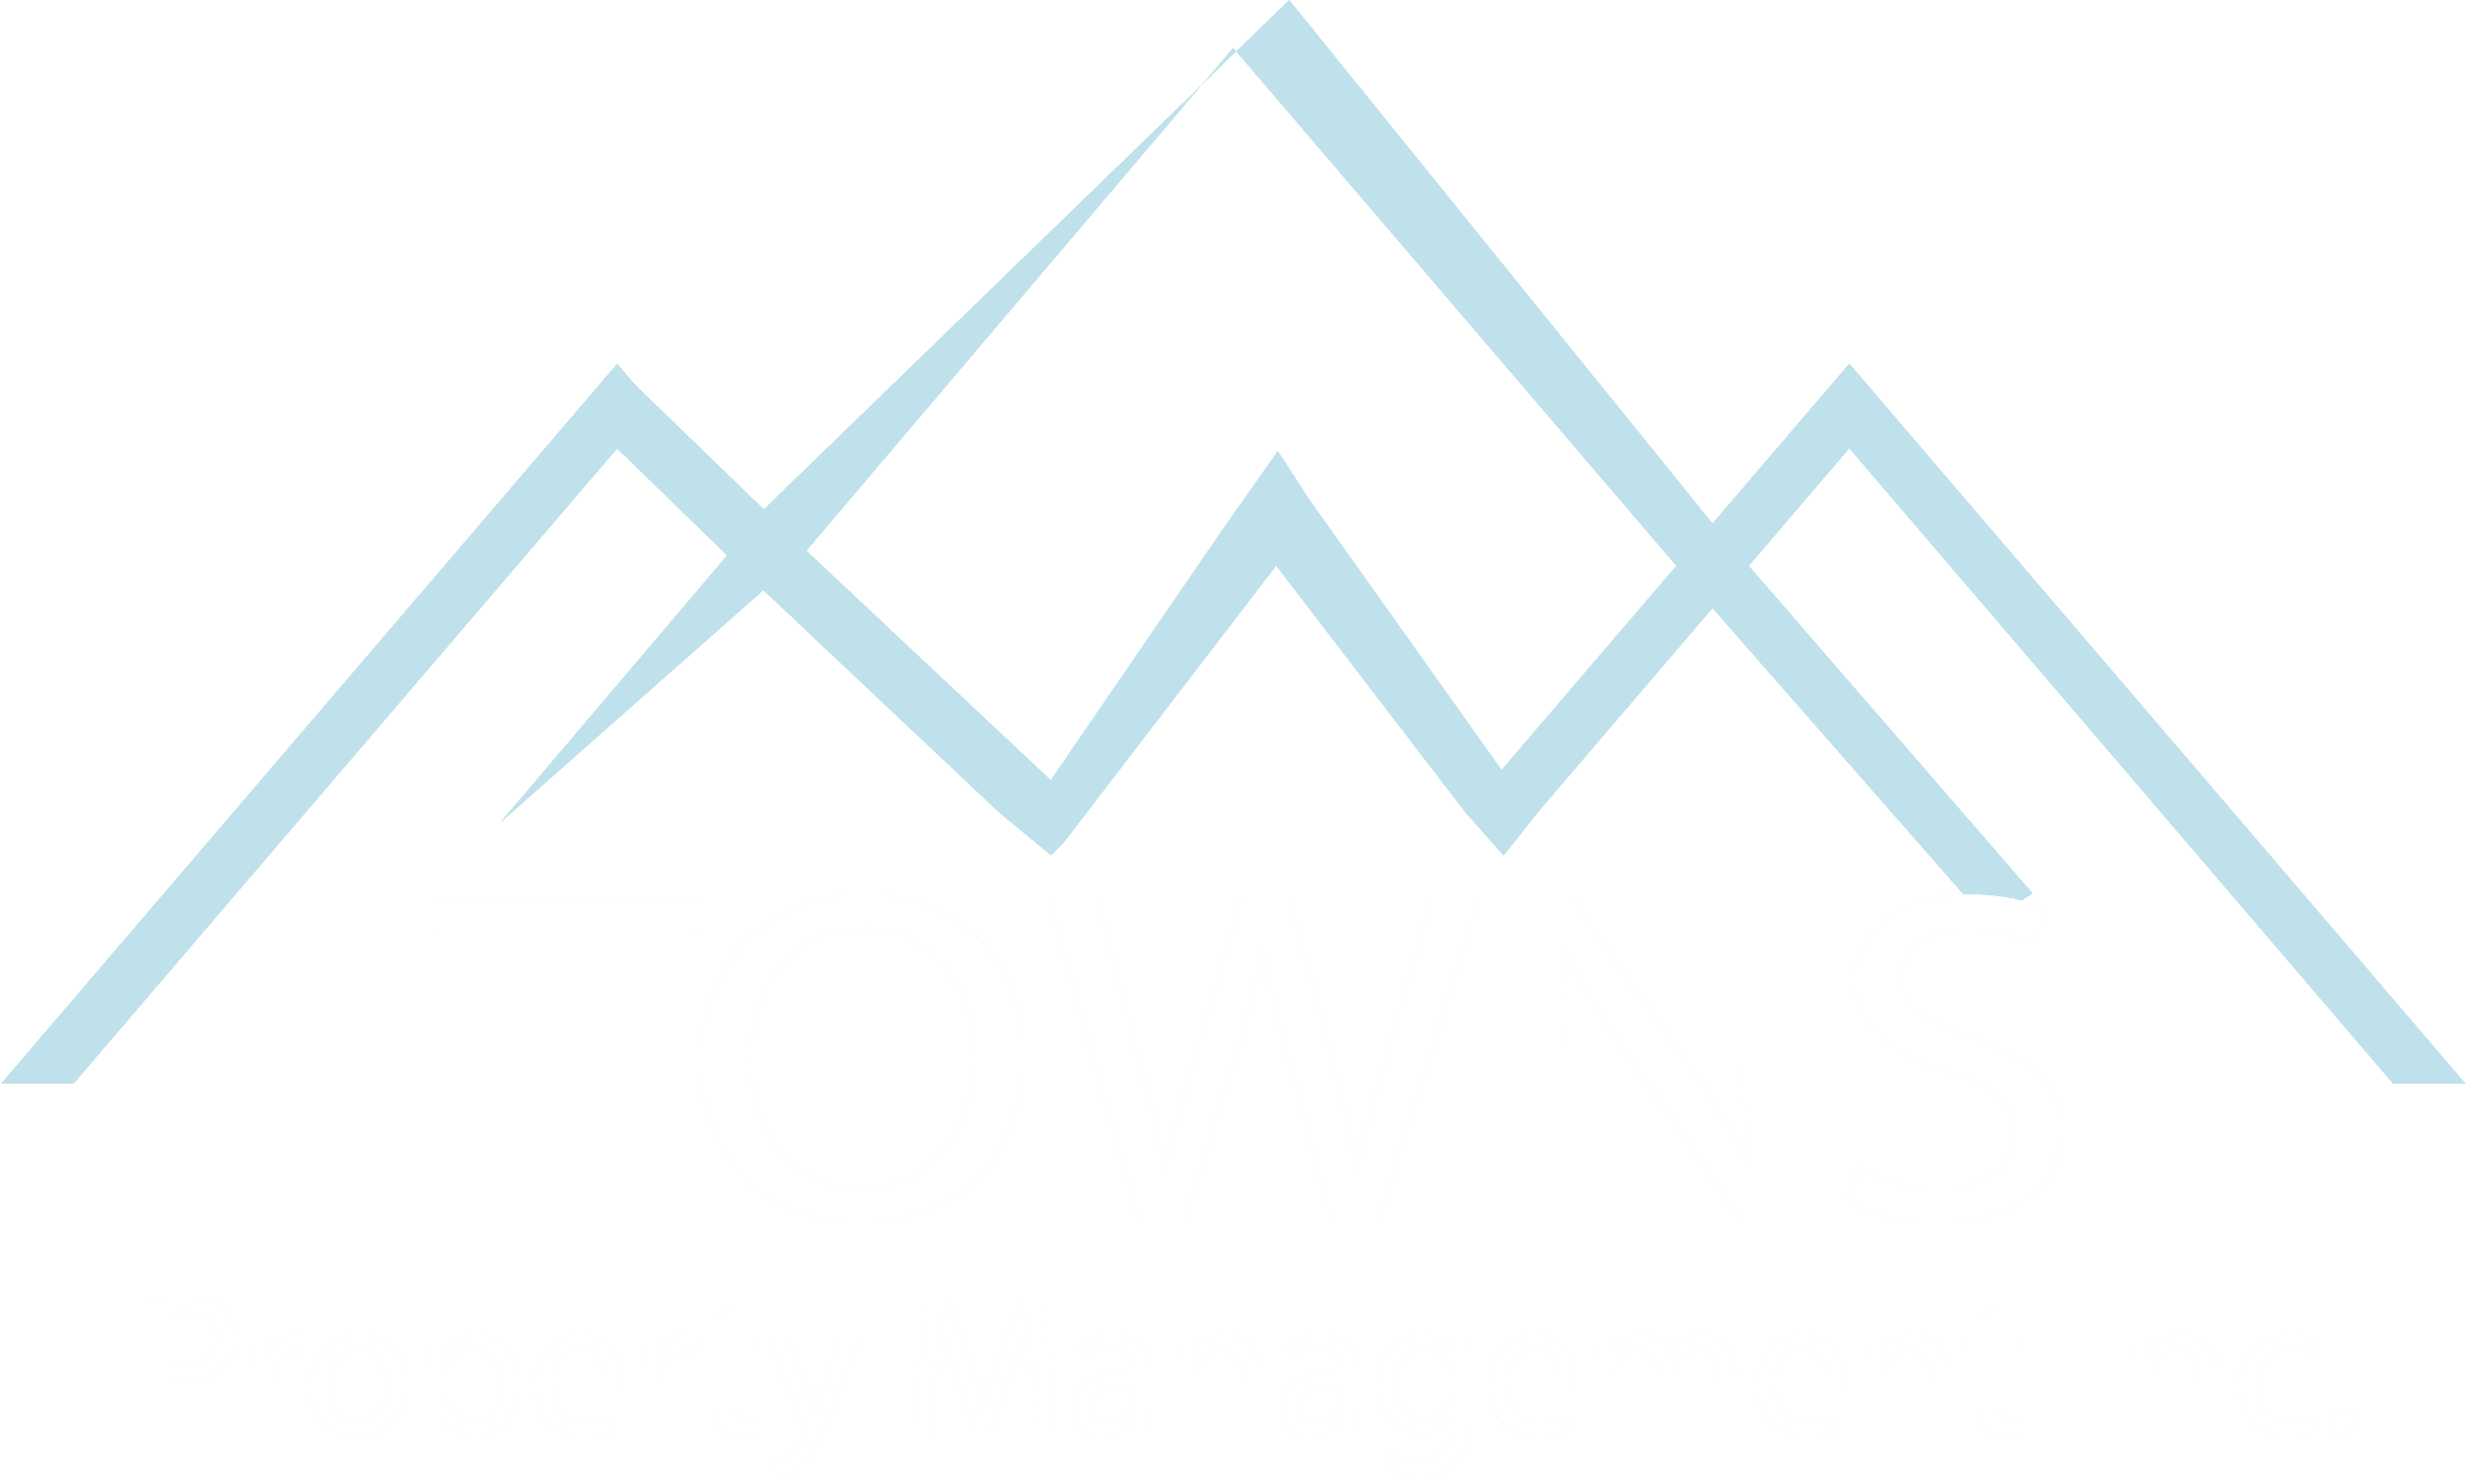 Towns Property Management, Inc.